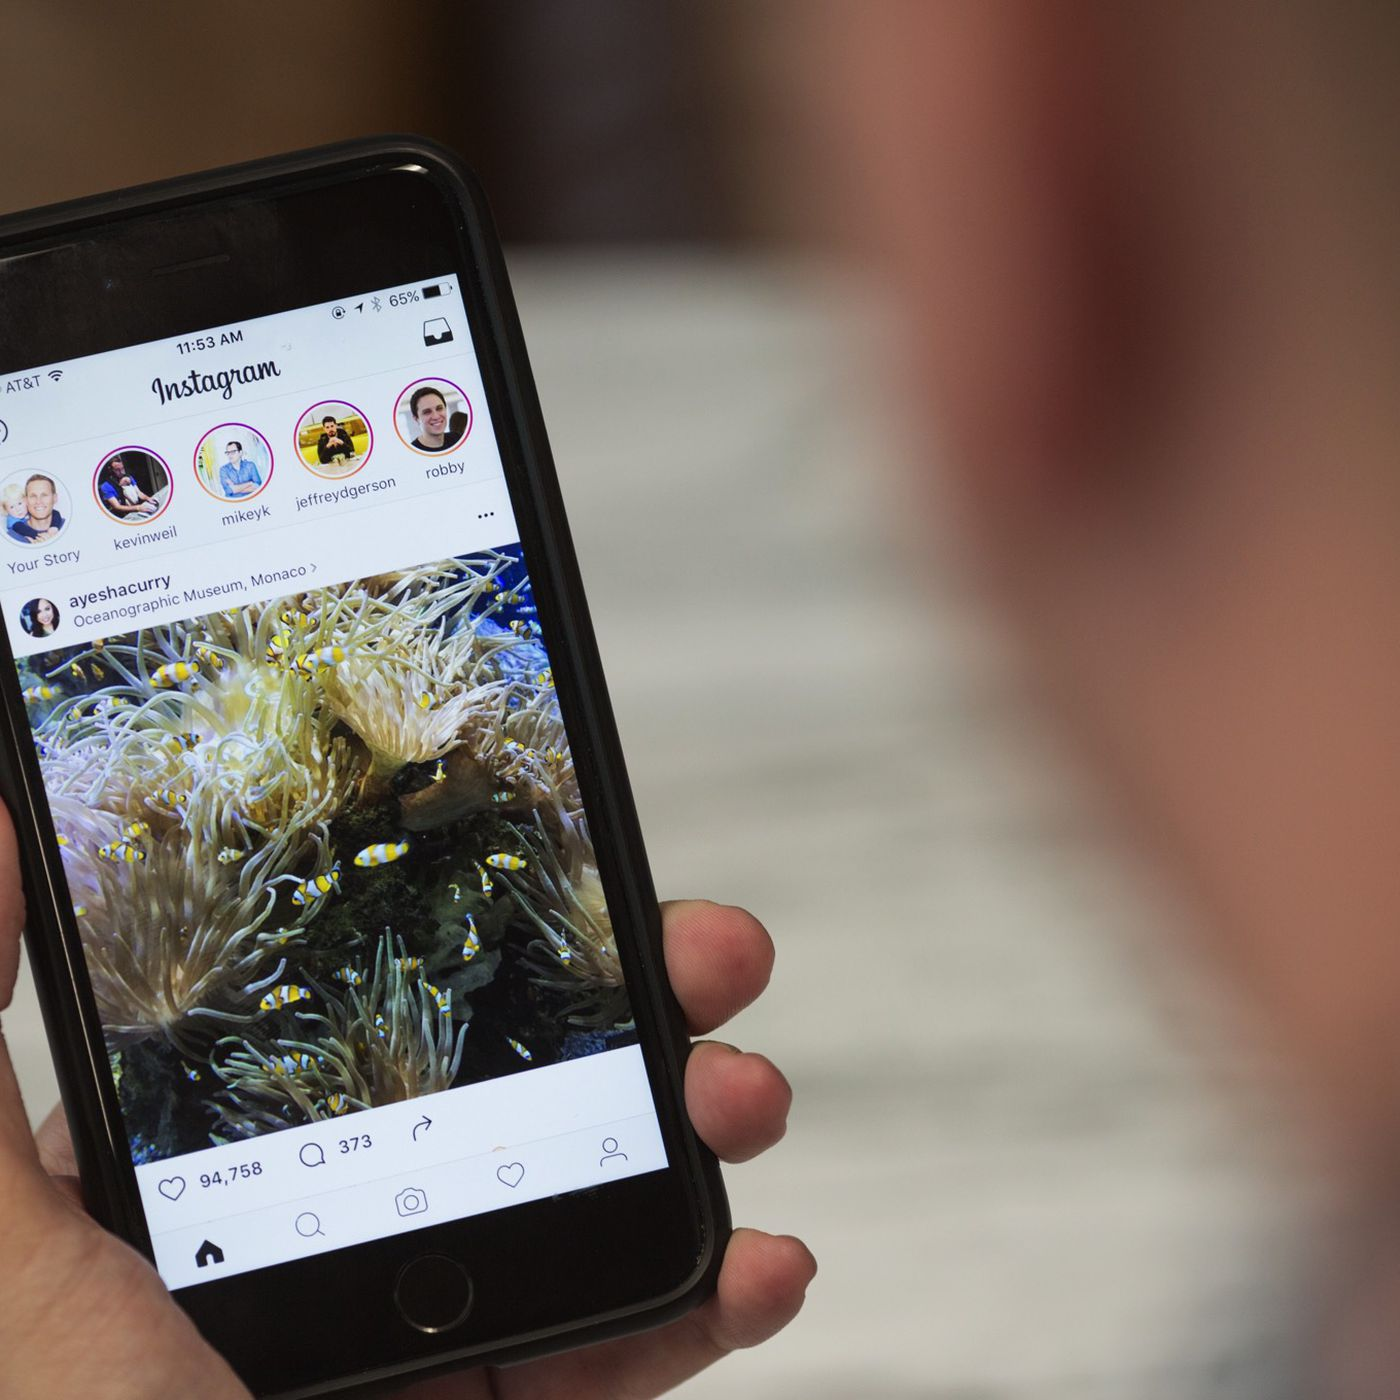 61562b0aa You can now search Instagram Stories by location and hashtag - The Verge